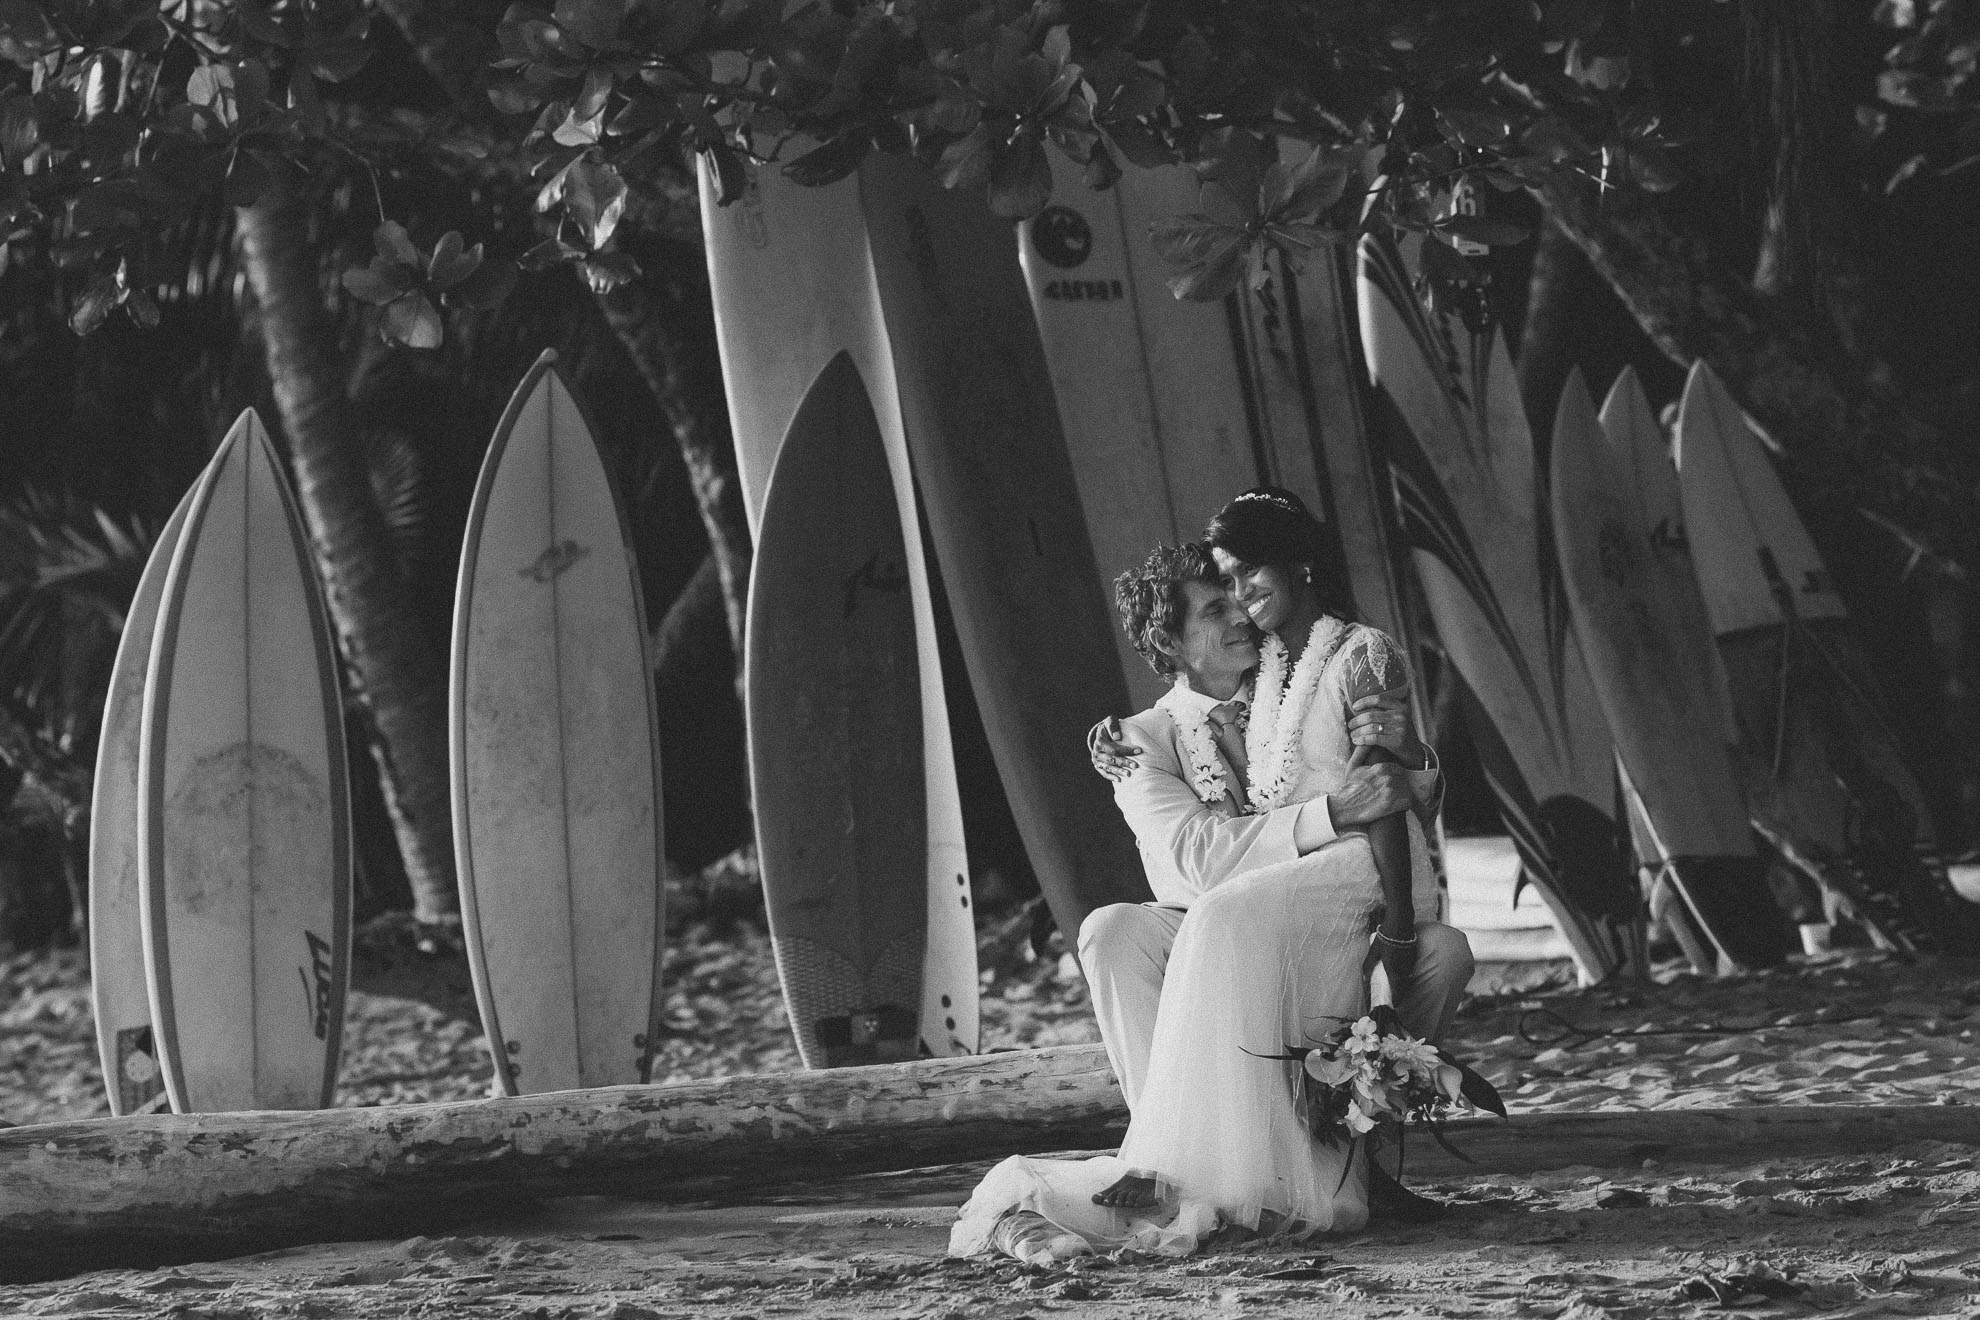 Bride and groom with surfboards